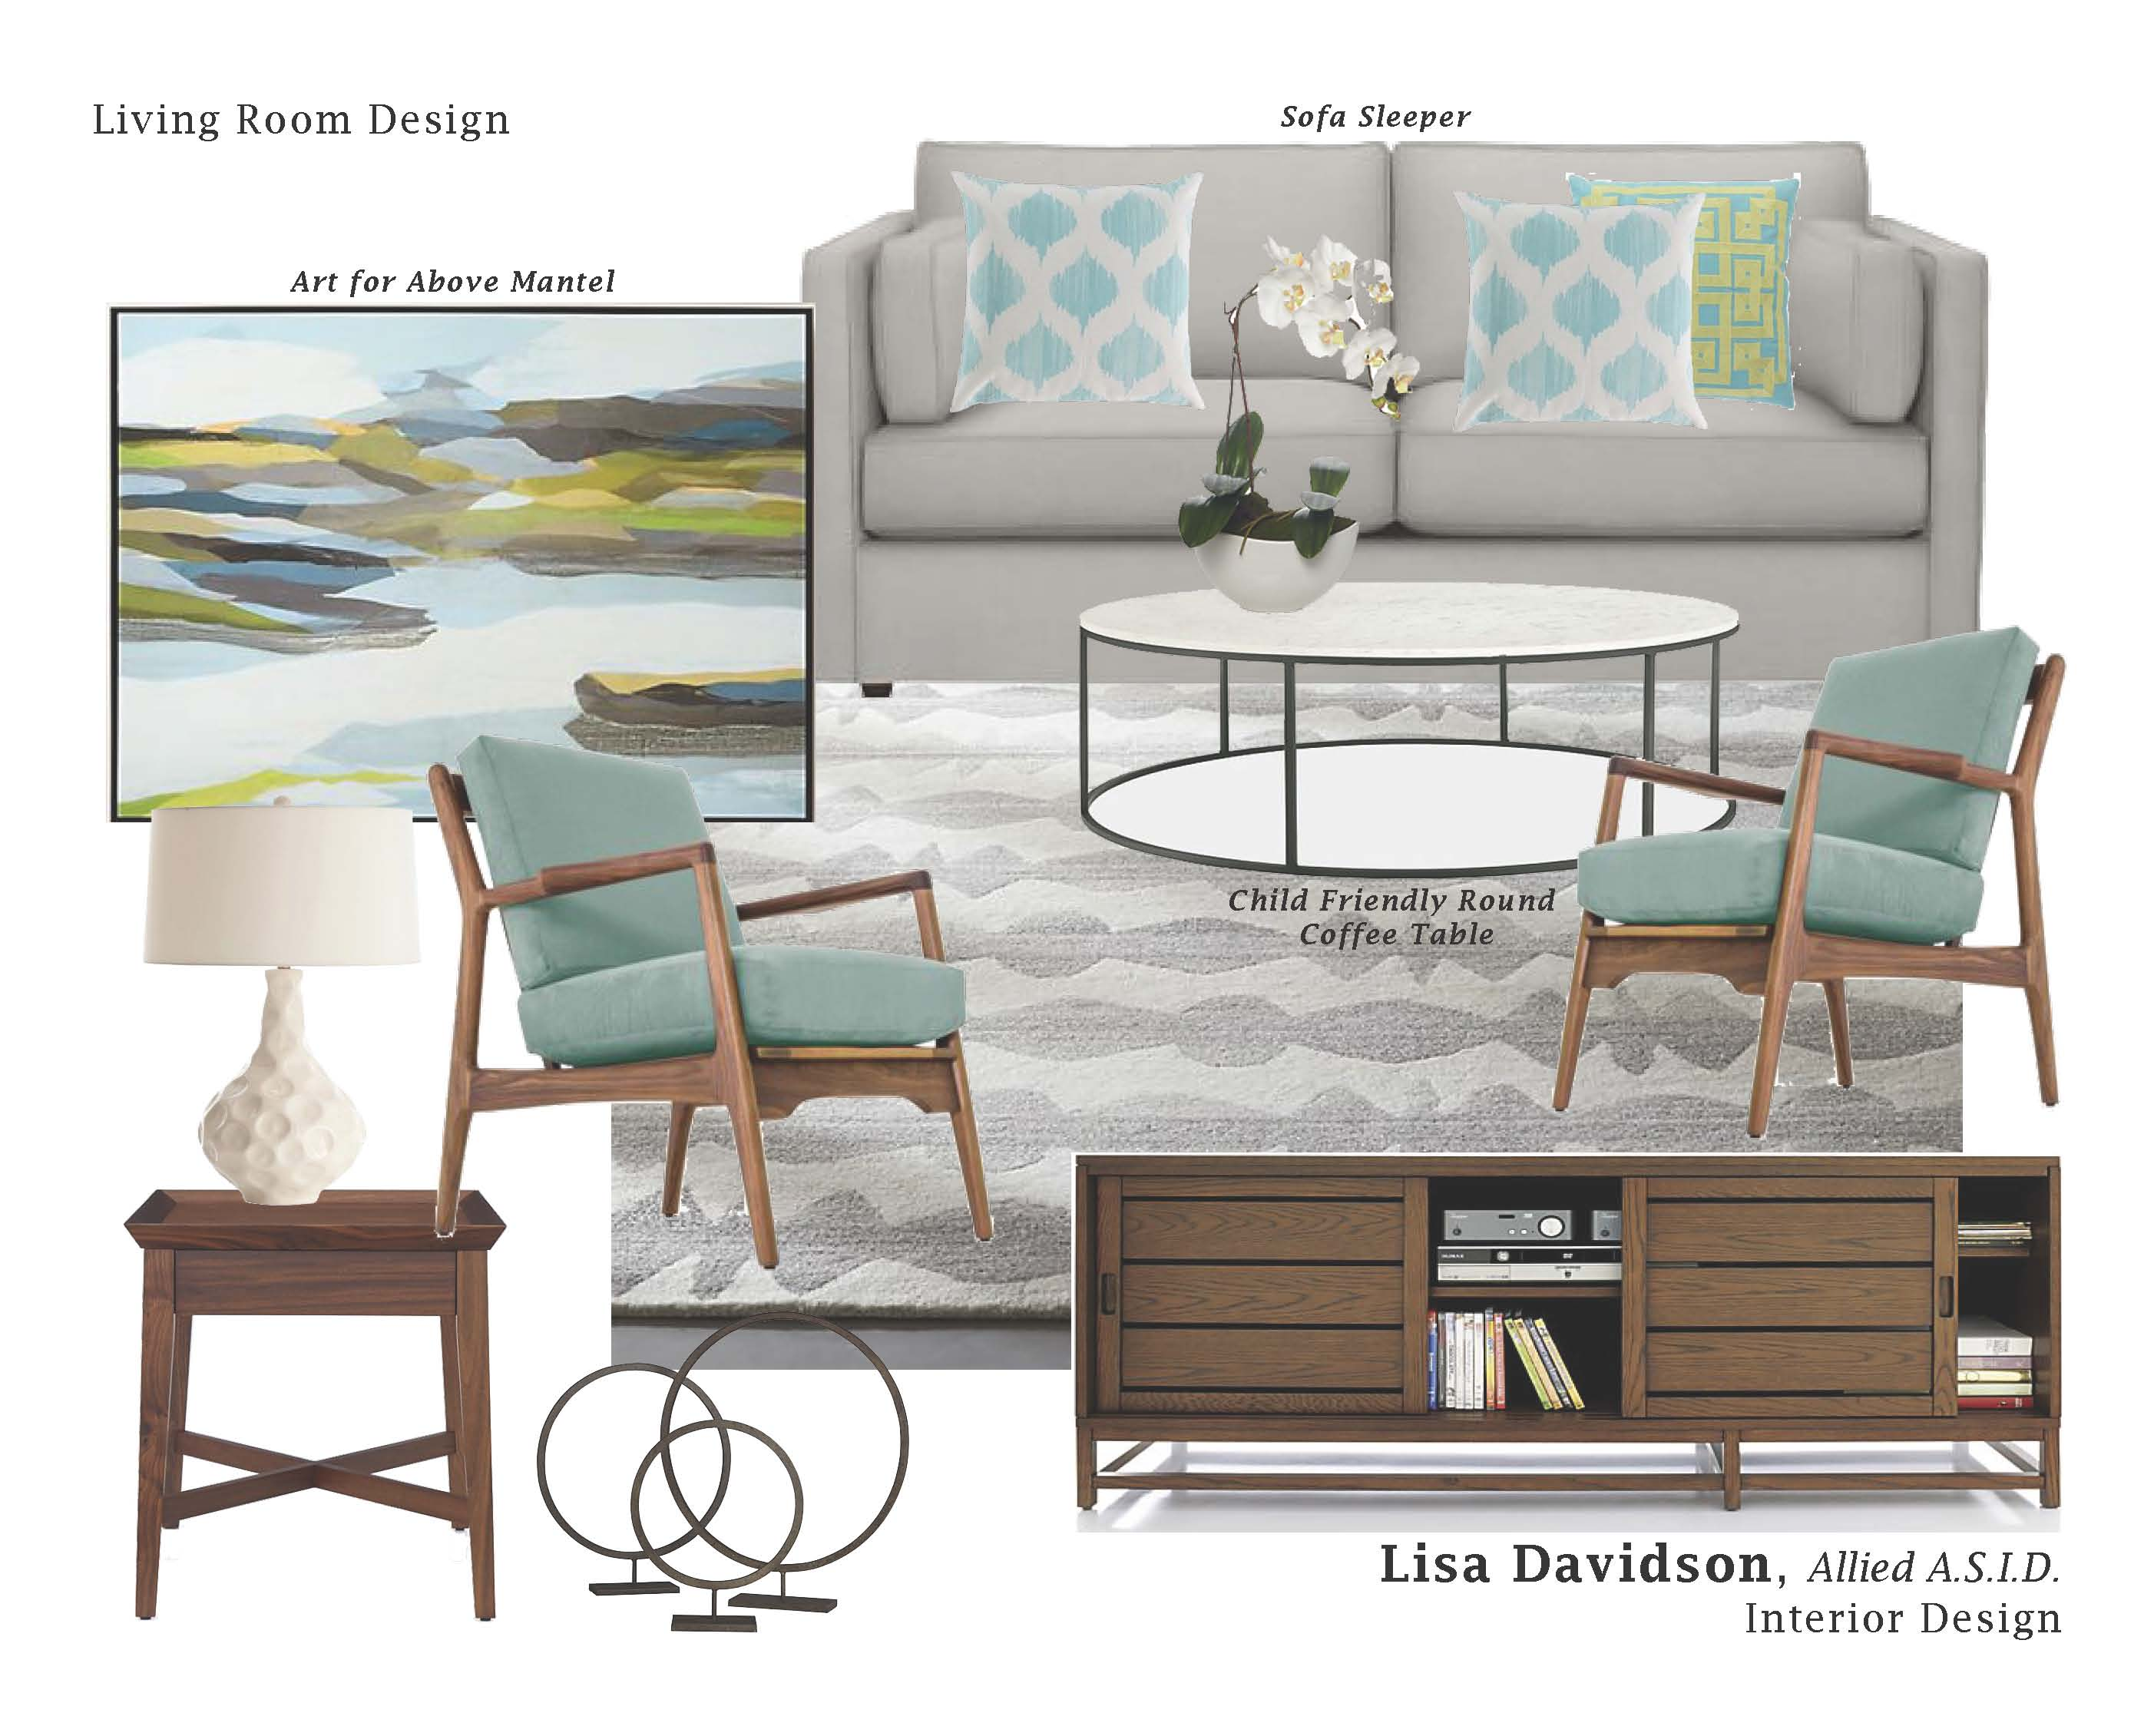 new design board texture grey tones turquoise and